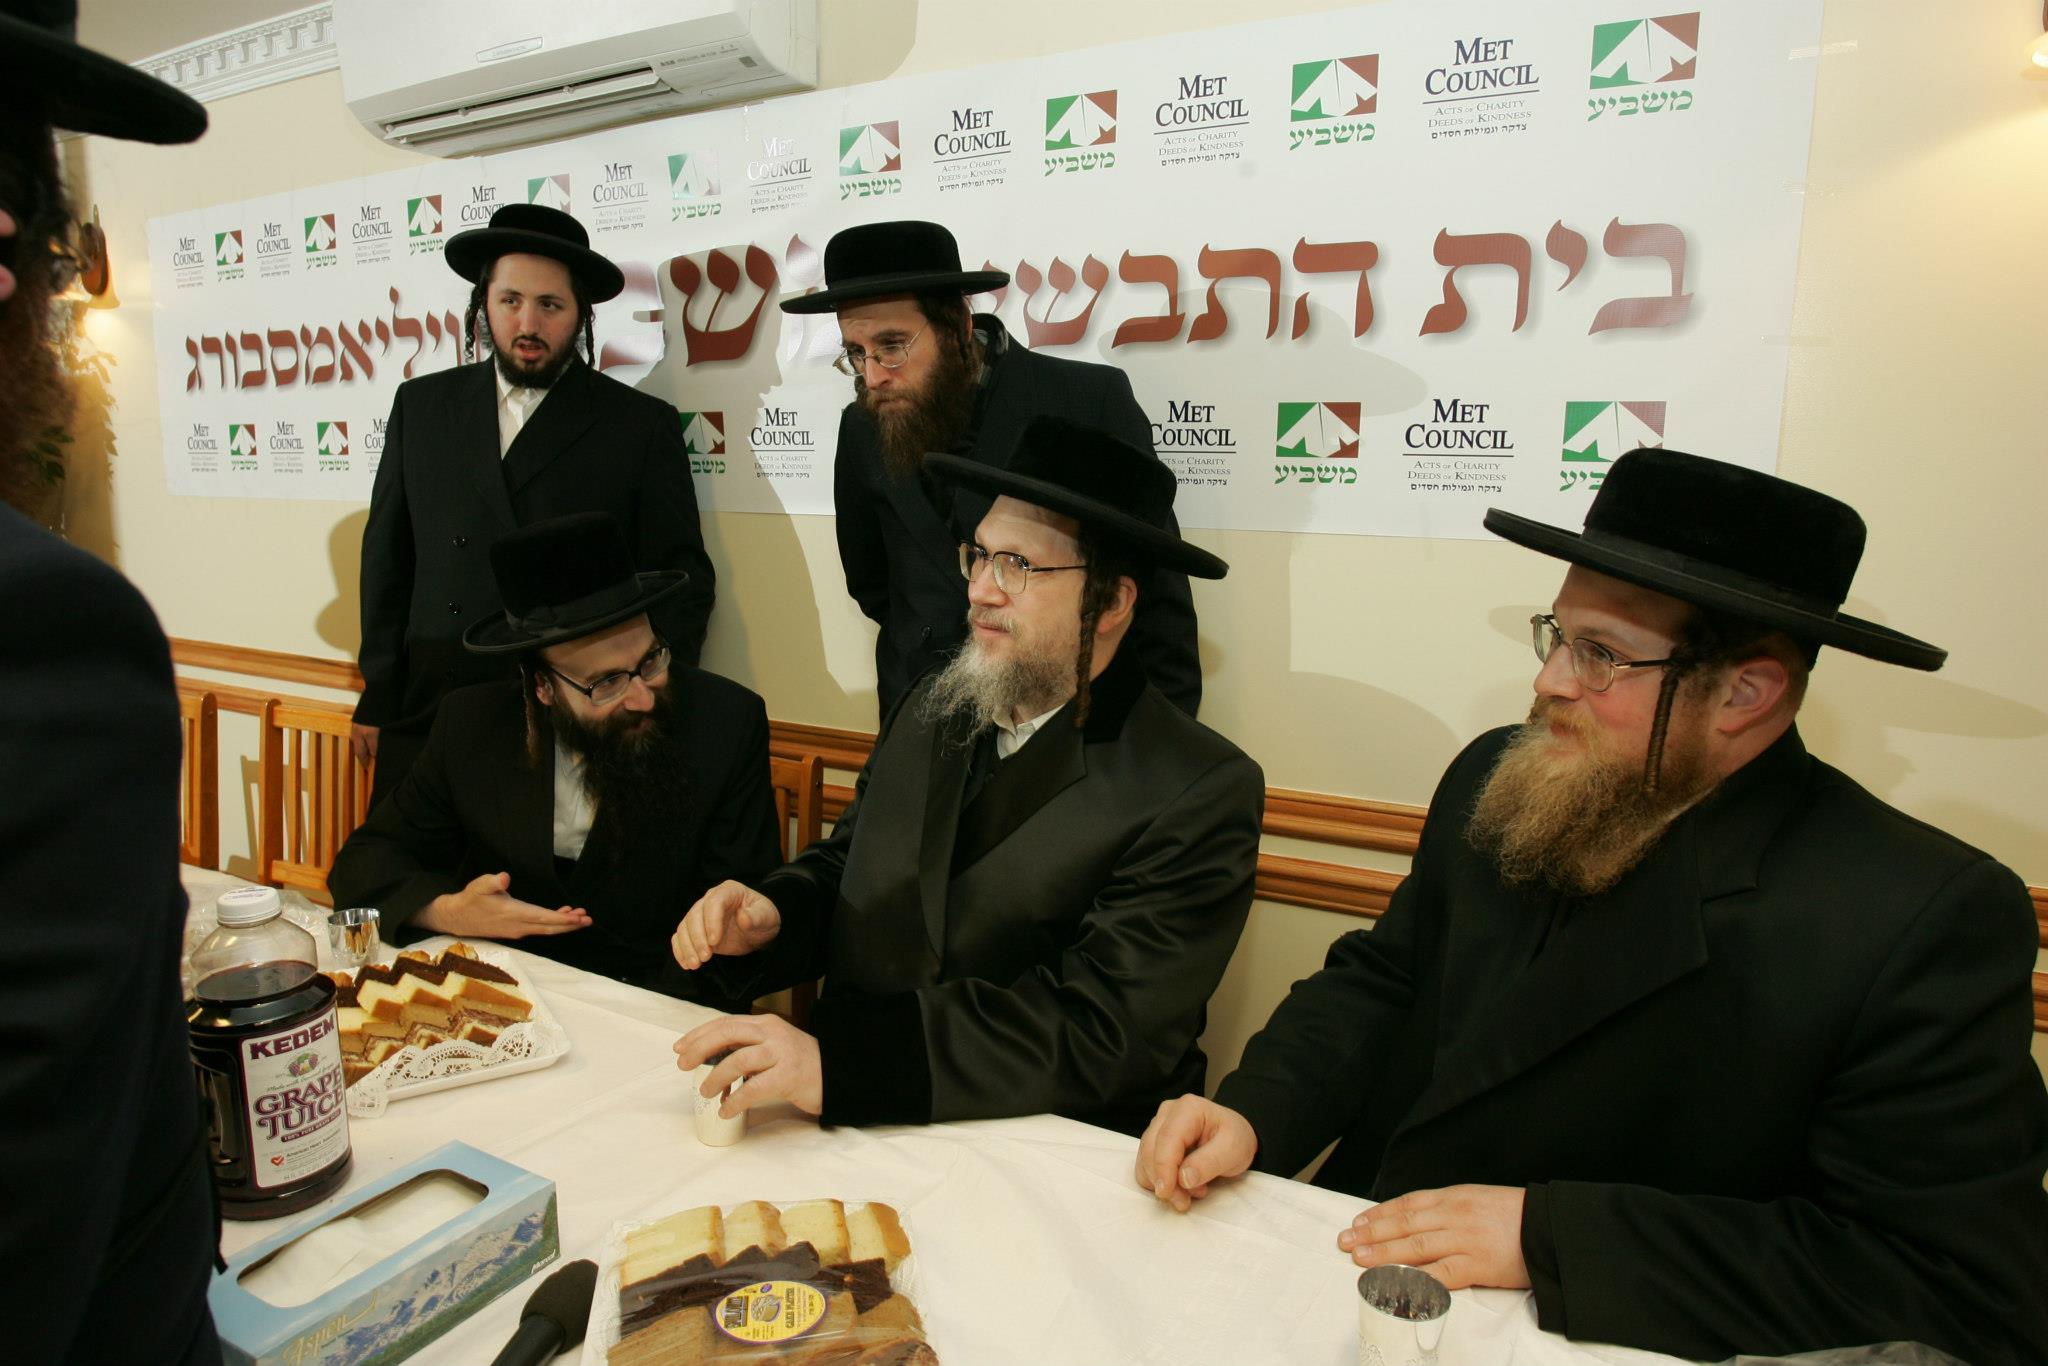 Masbia_Supporter__Galante_Rebbe__Rabbi_Yitzchok_Isaac_Menachem_Eichenstein__Visiting_Masbia_of_Williamsburg.jpg